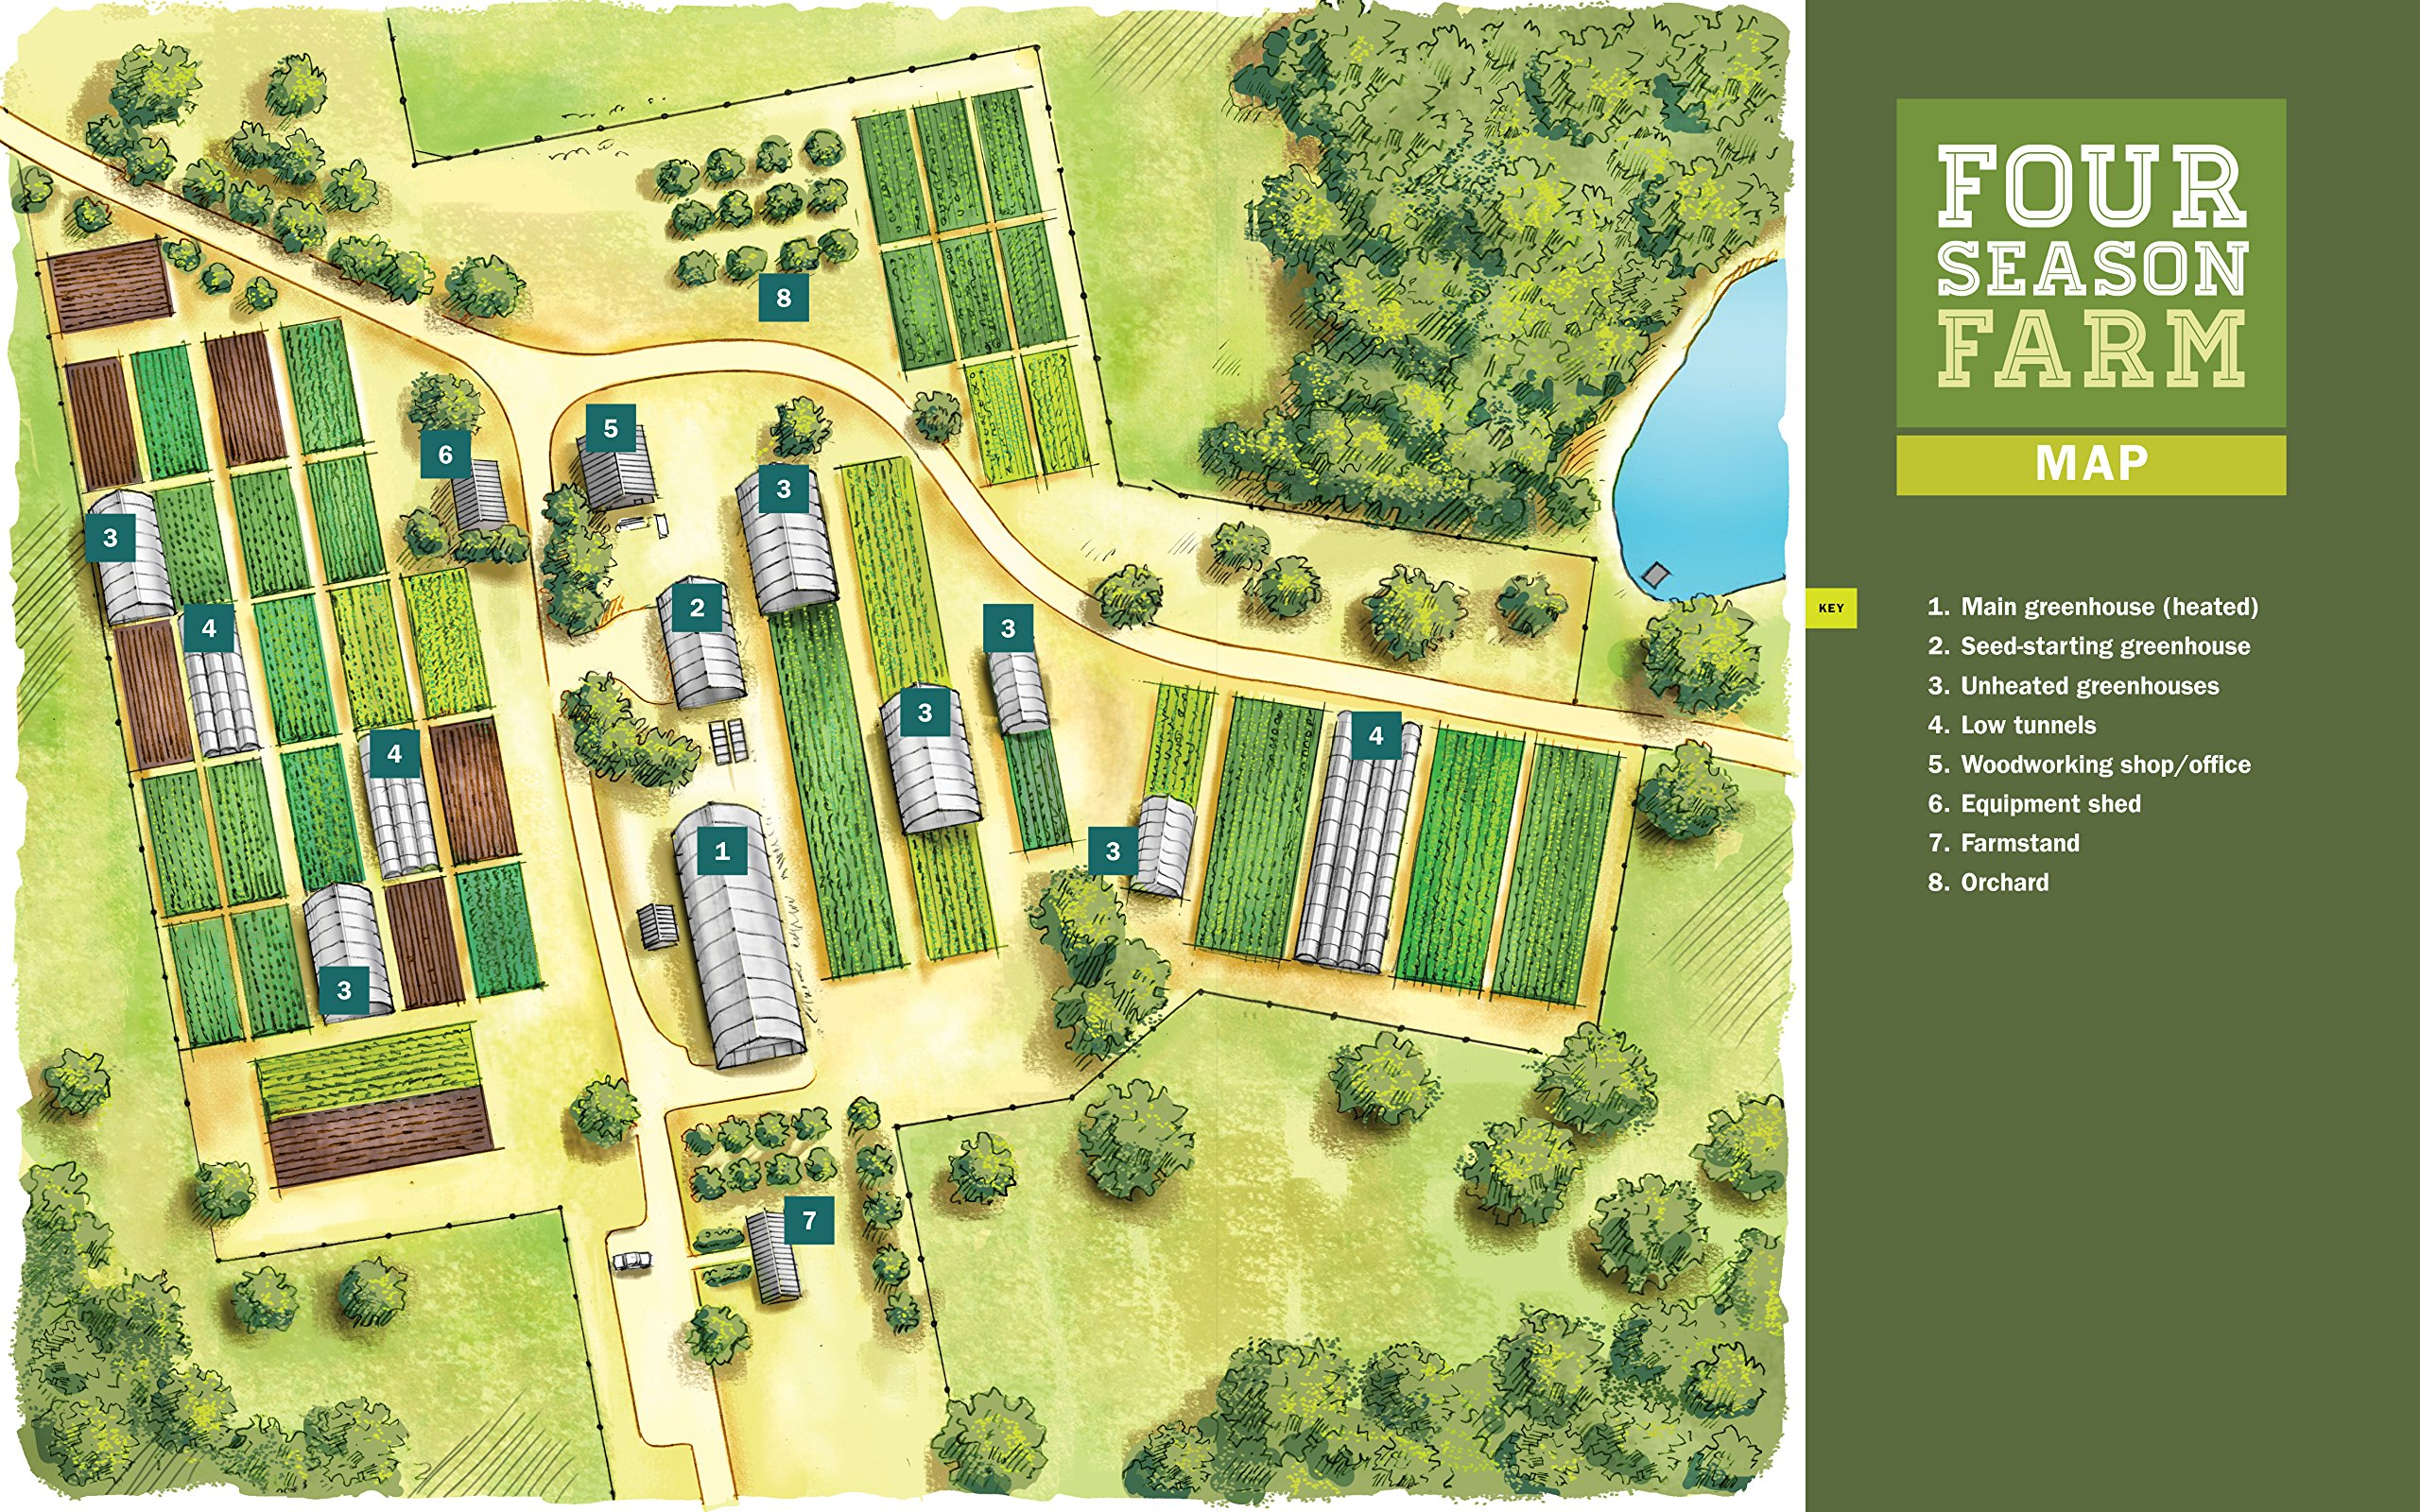 Compact Farms 15 Proven Plans For Market Farms On 5 Acres